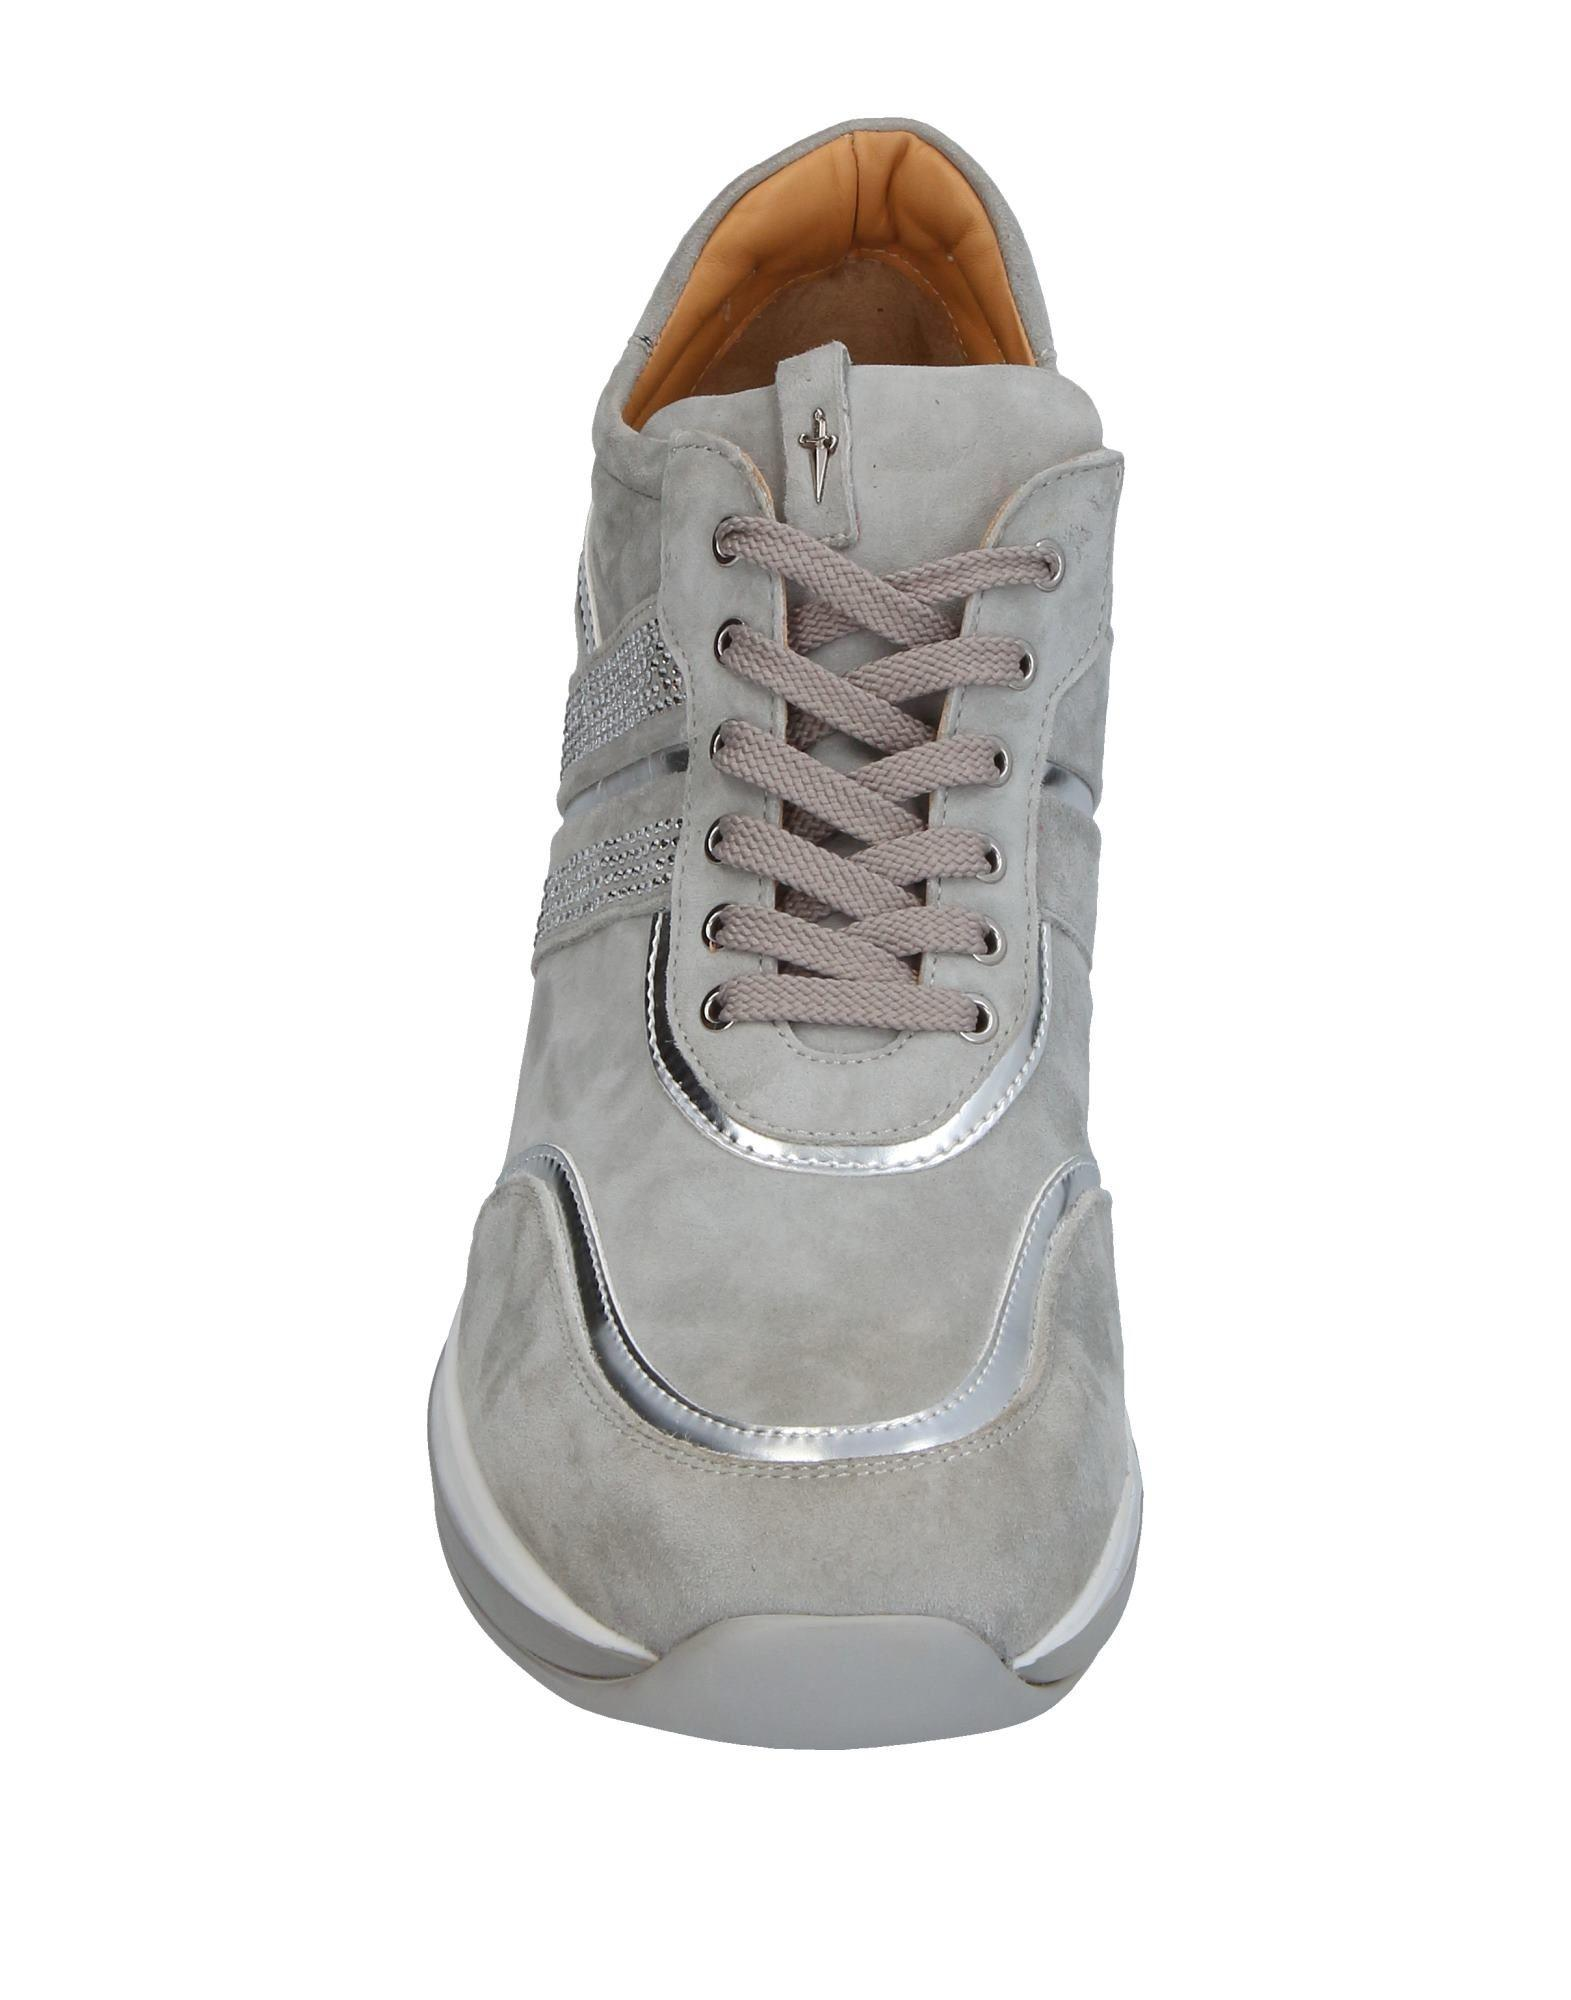 Cesare Paciotti Leather Low-tops & Sneakers in Light Grey (Grey)